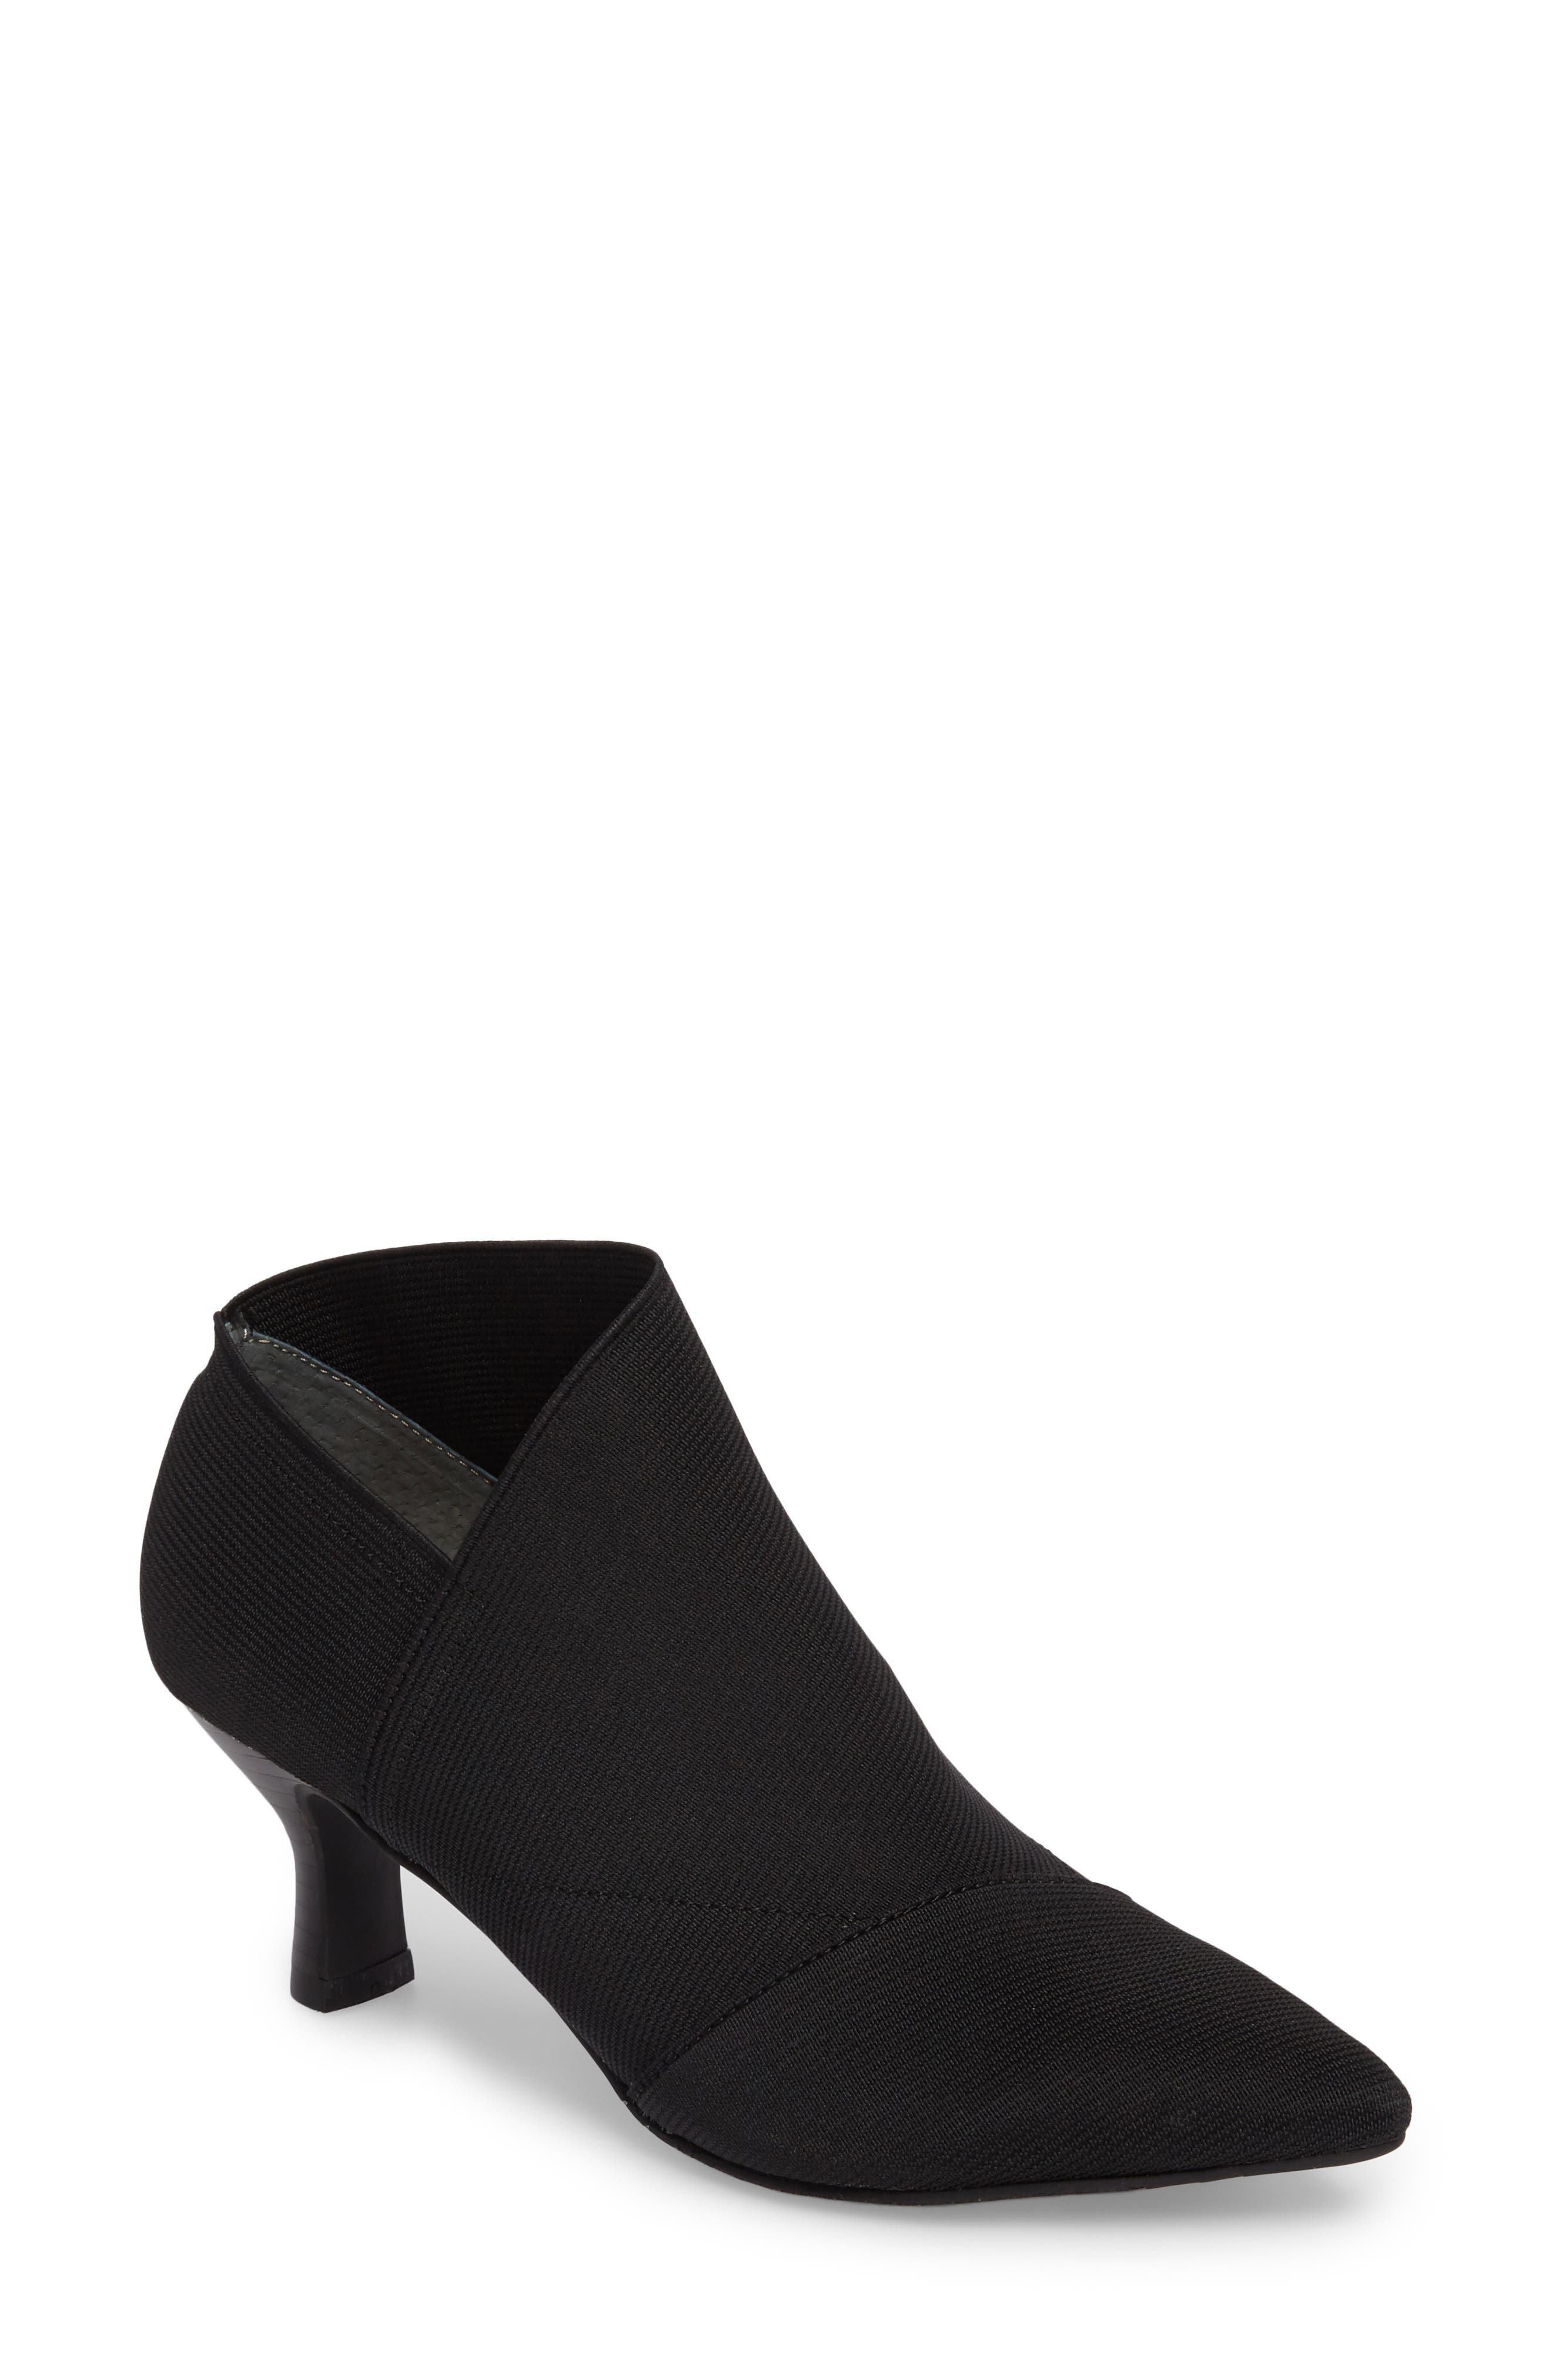 Hayes Pointy Toe Bootie,                             Main thumbnail 1, color,                             Black Fabric